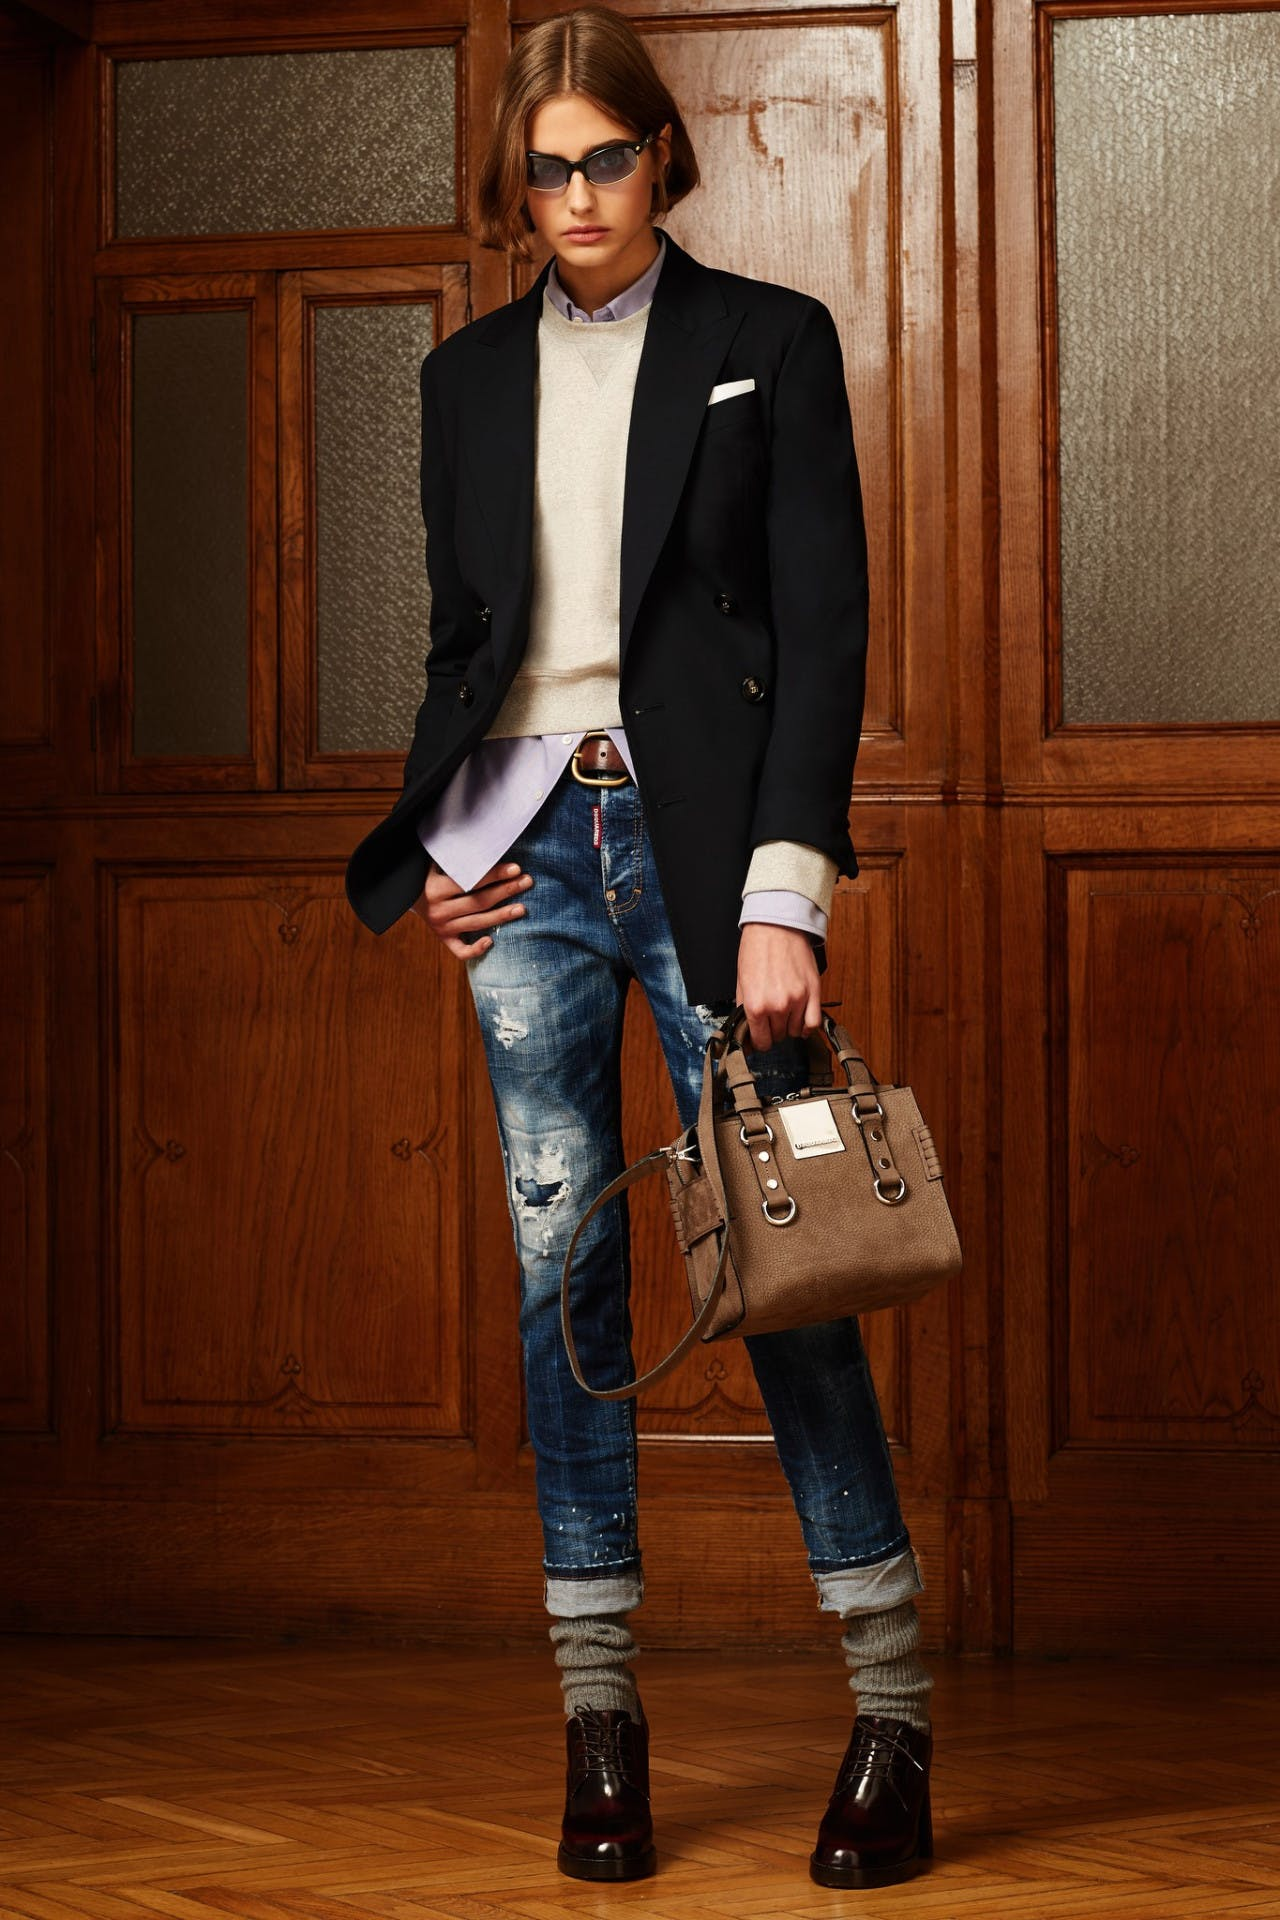 dsquared2 pre fall milan fashion runway backstage pre order showroom trunk show womenswear blazer denim